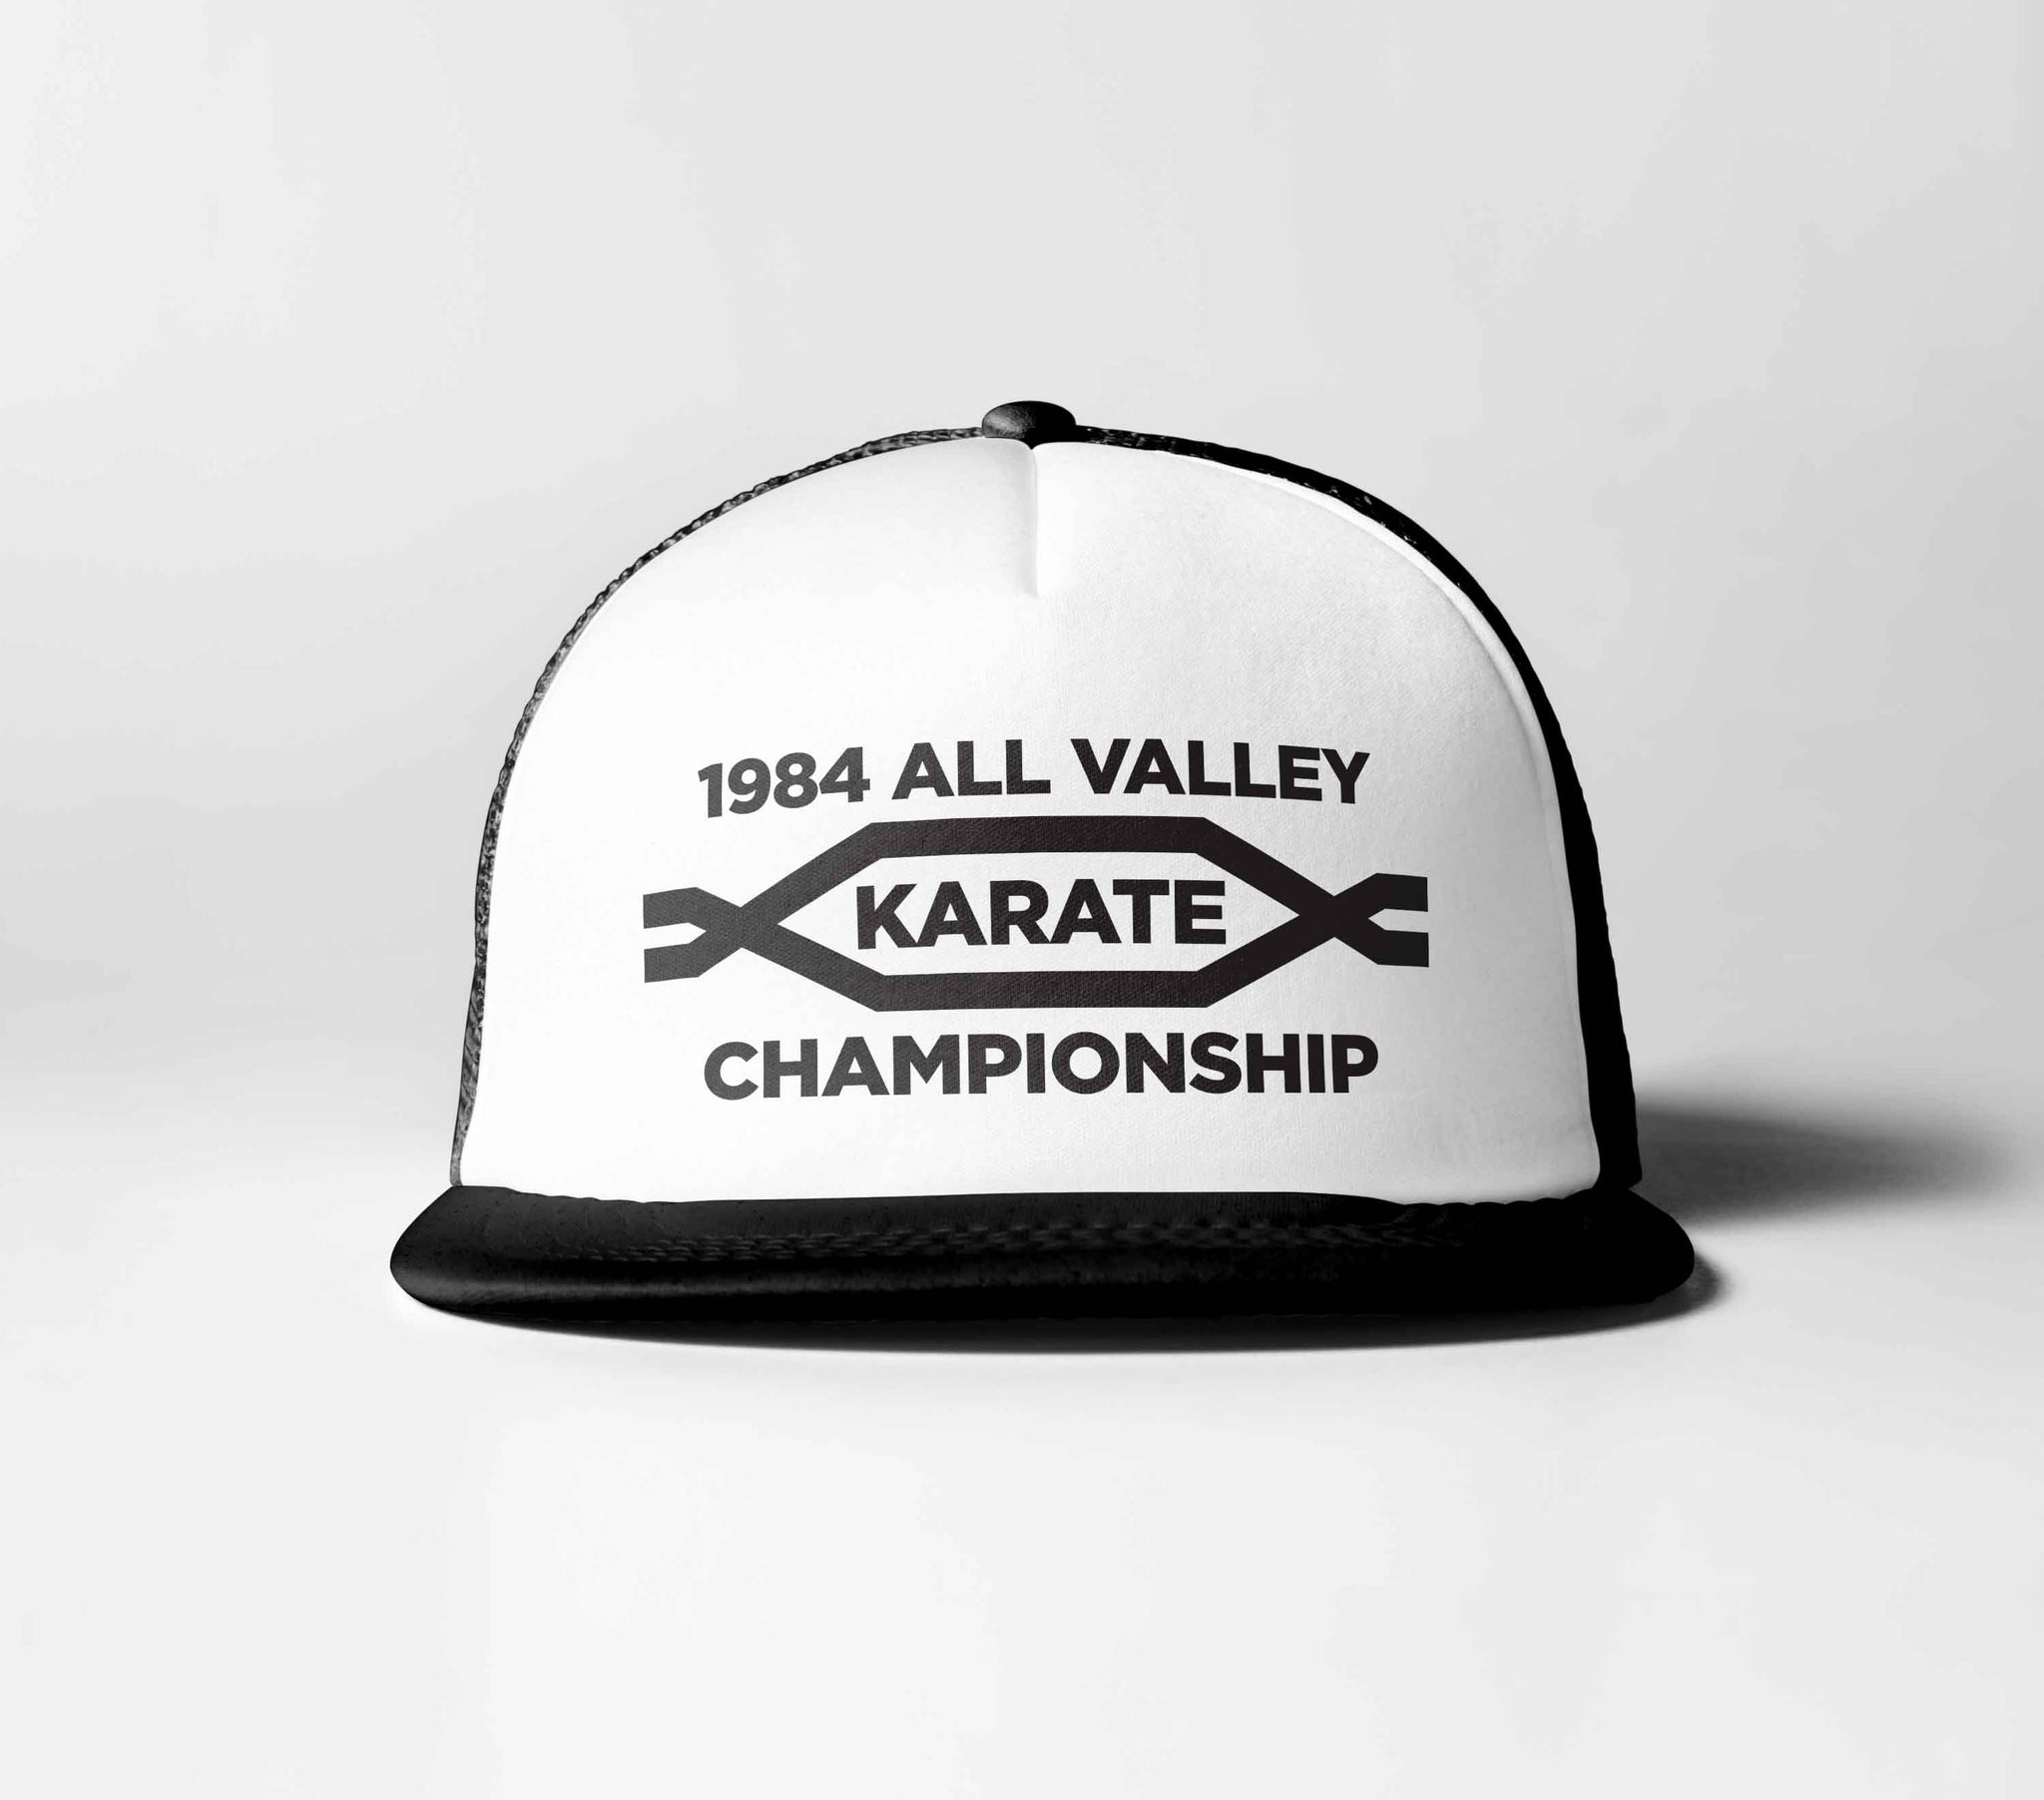 1984 All Valley Karate